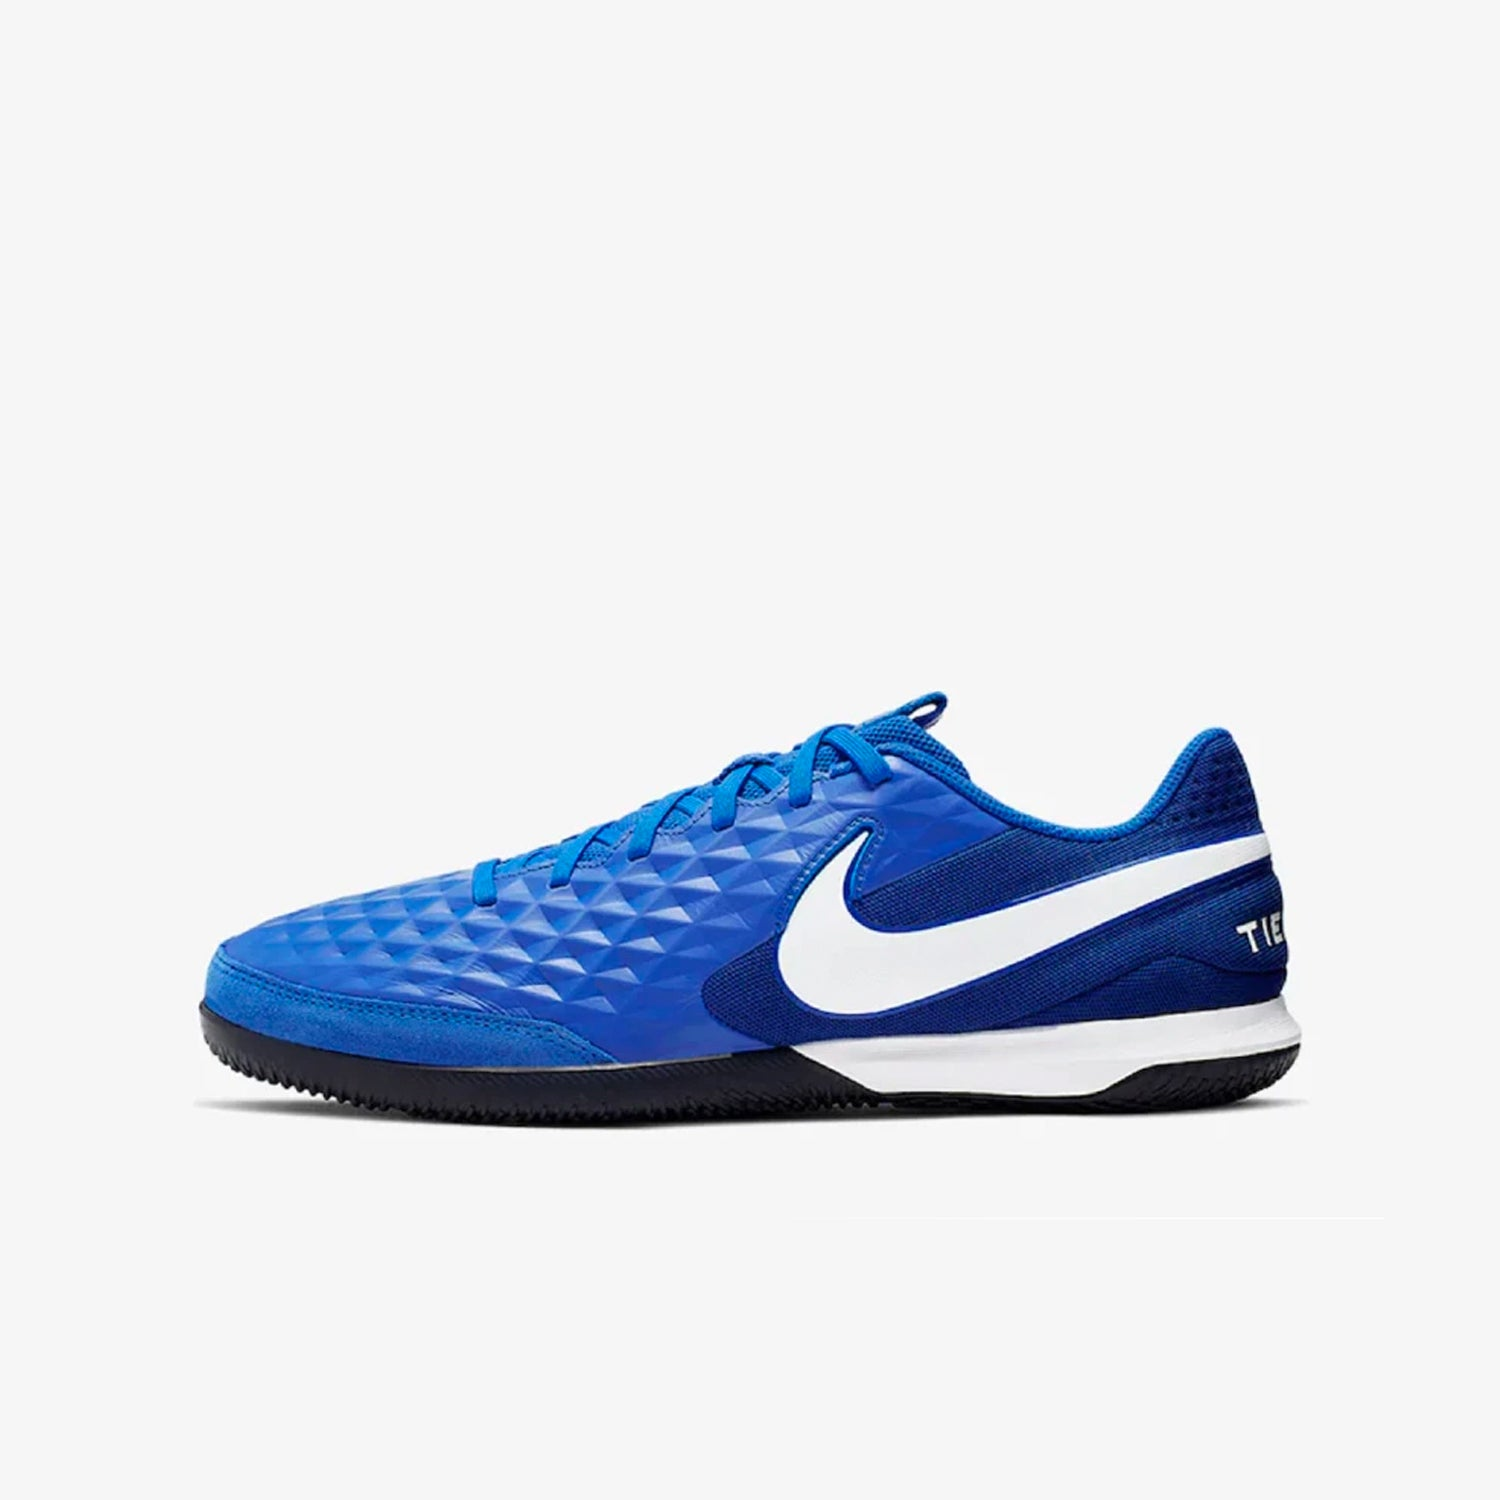 Tiempo Legend 8 Academy Indoor Shoes - Hyper Royal/White